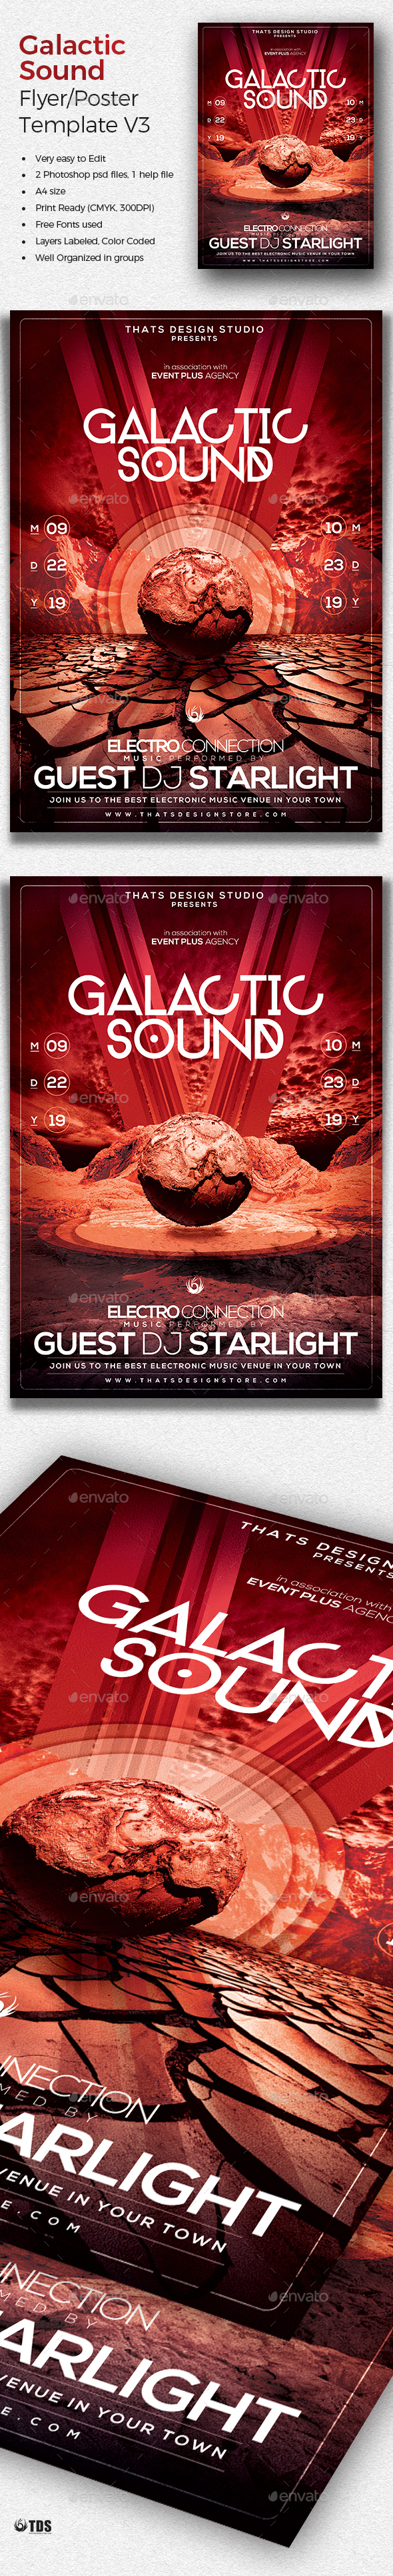 Galactic Sound Flyer Template V3 - Clubs & Parties Events